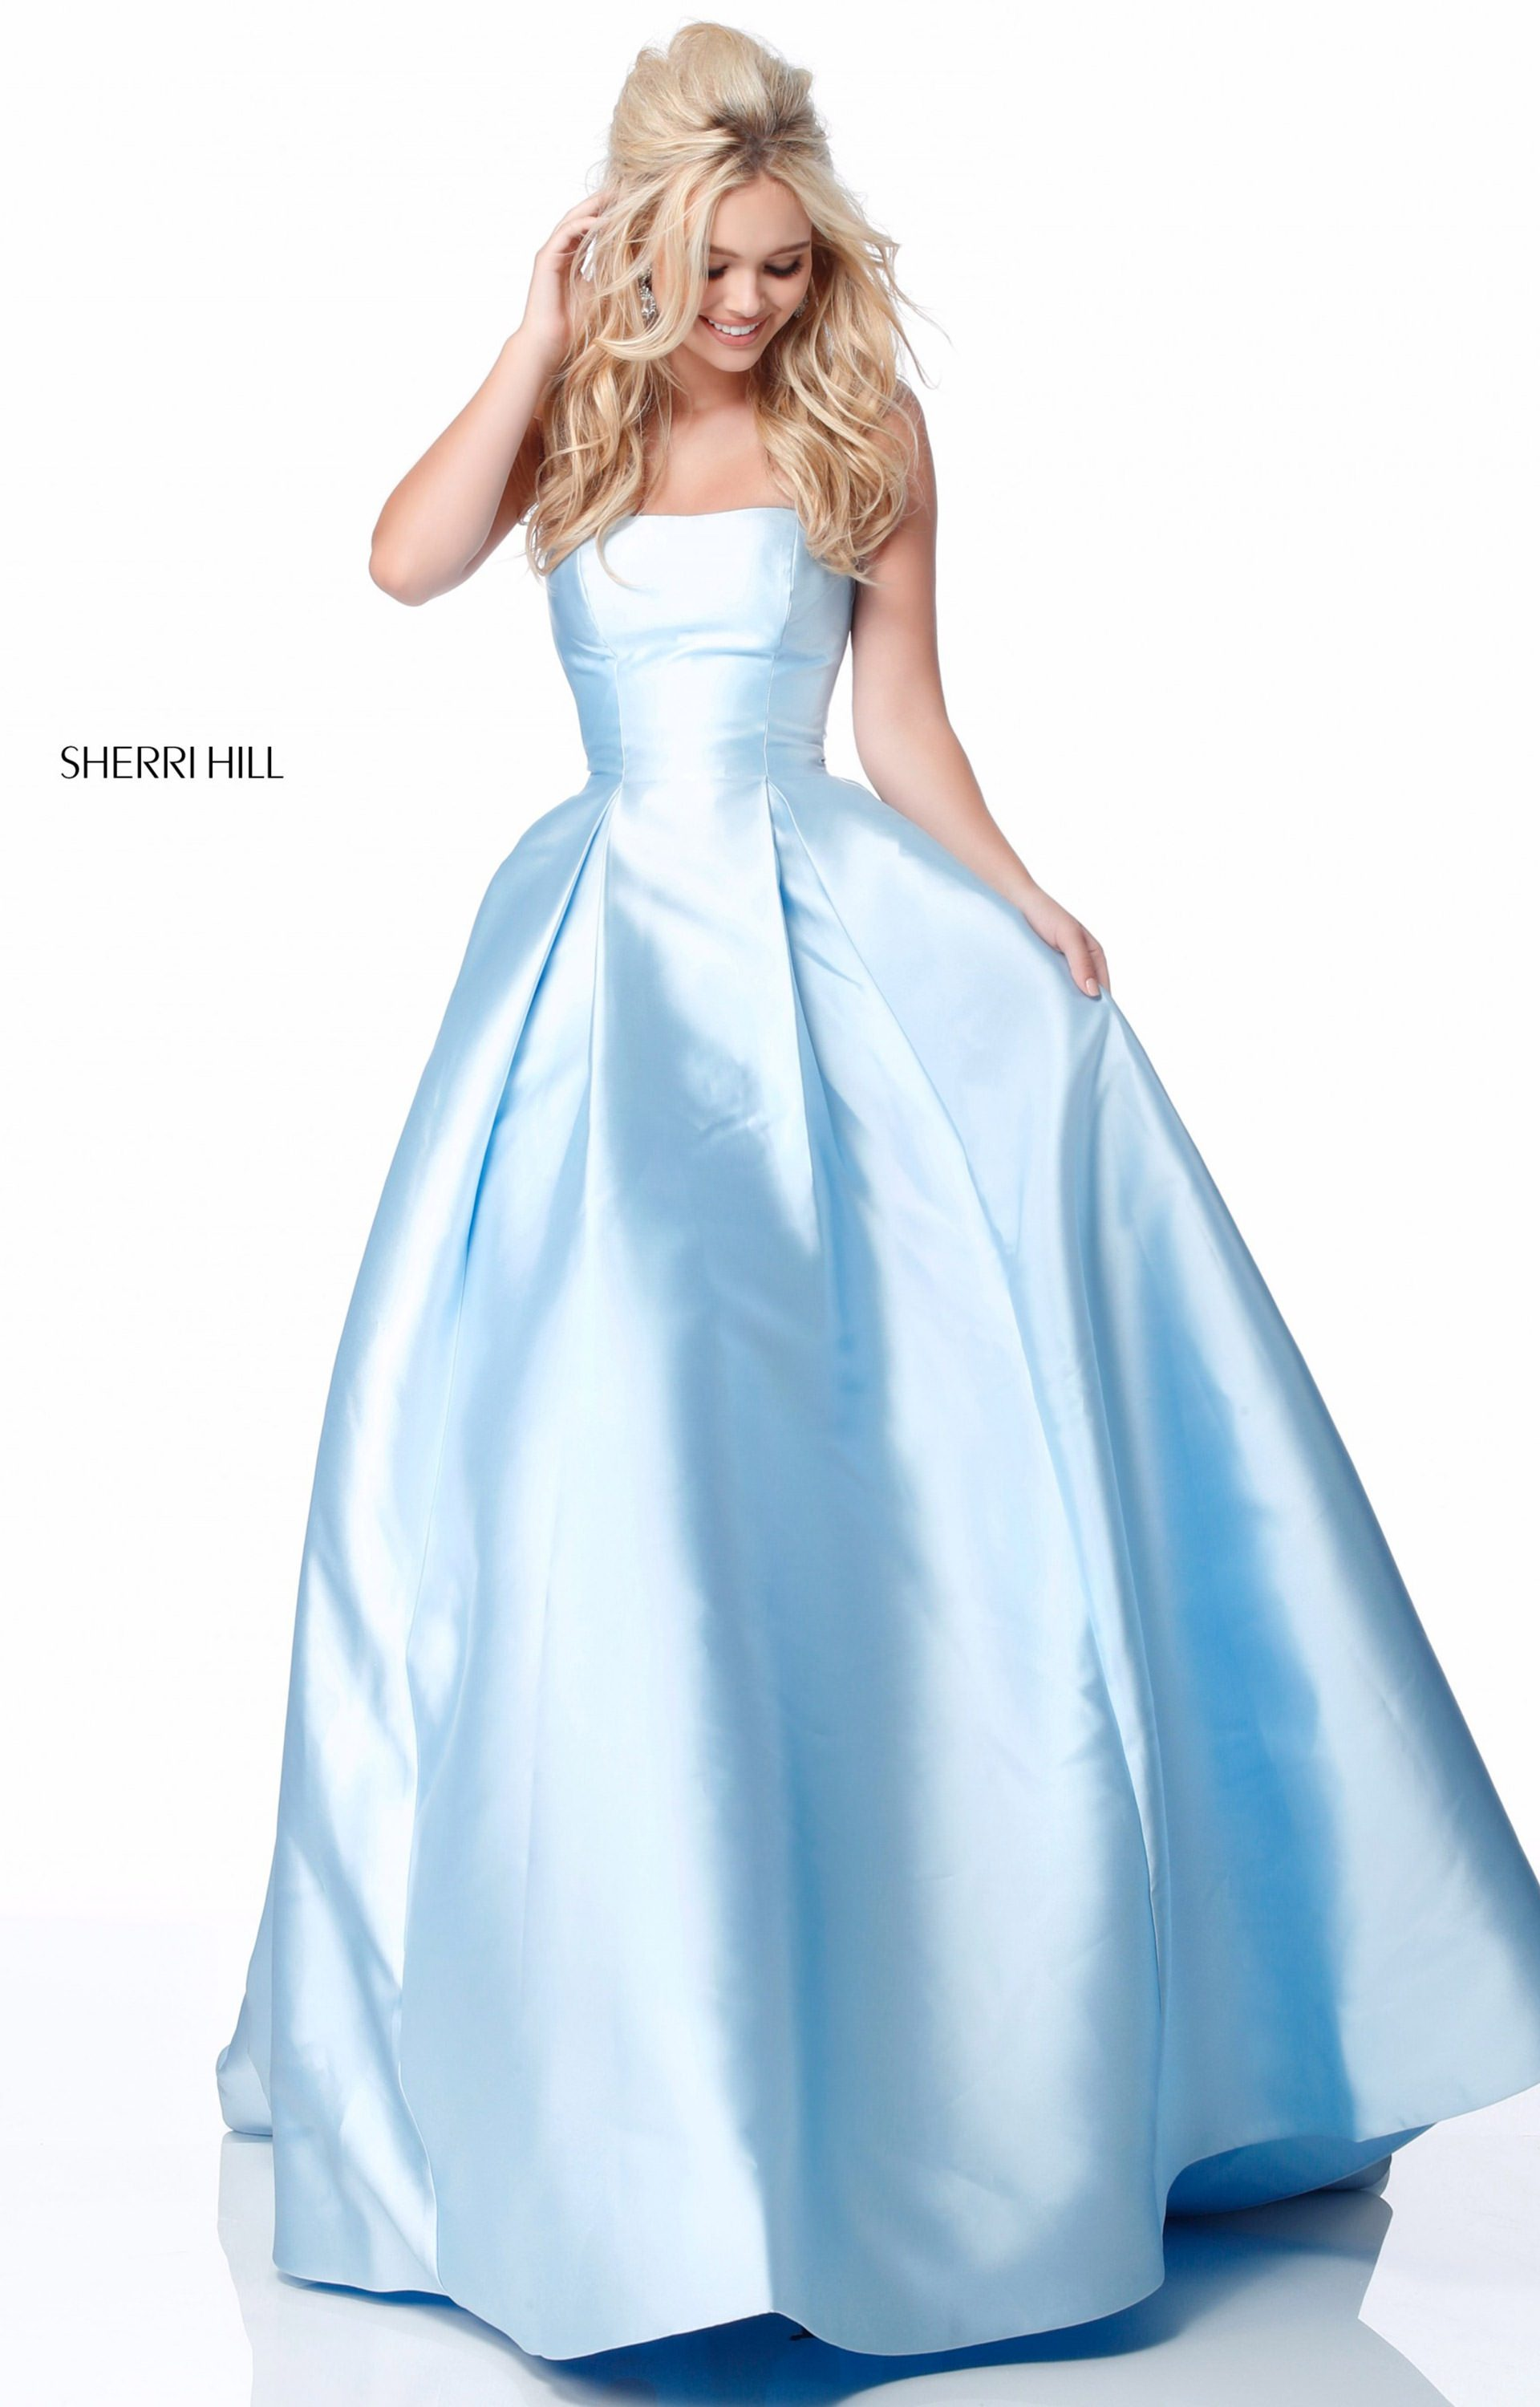 Sherri Hill 51917 - Strapless Mikado Ball Gown Prom Dress